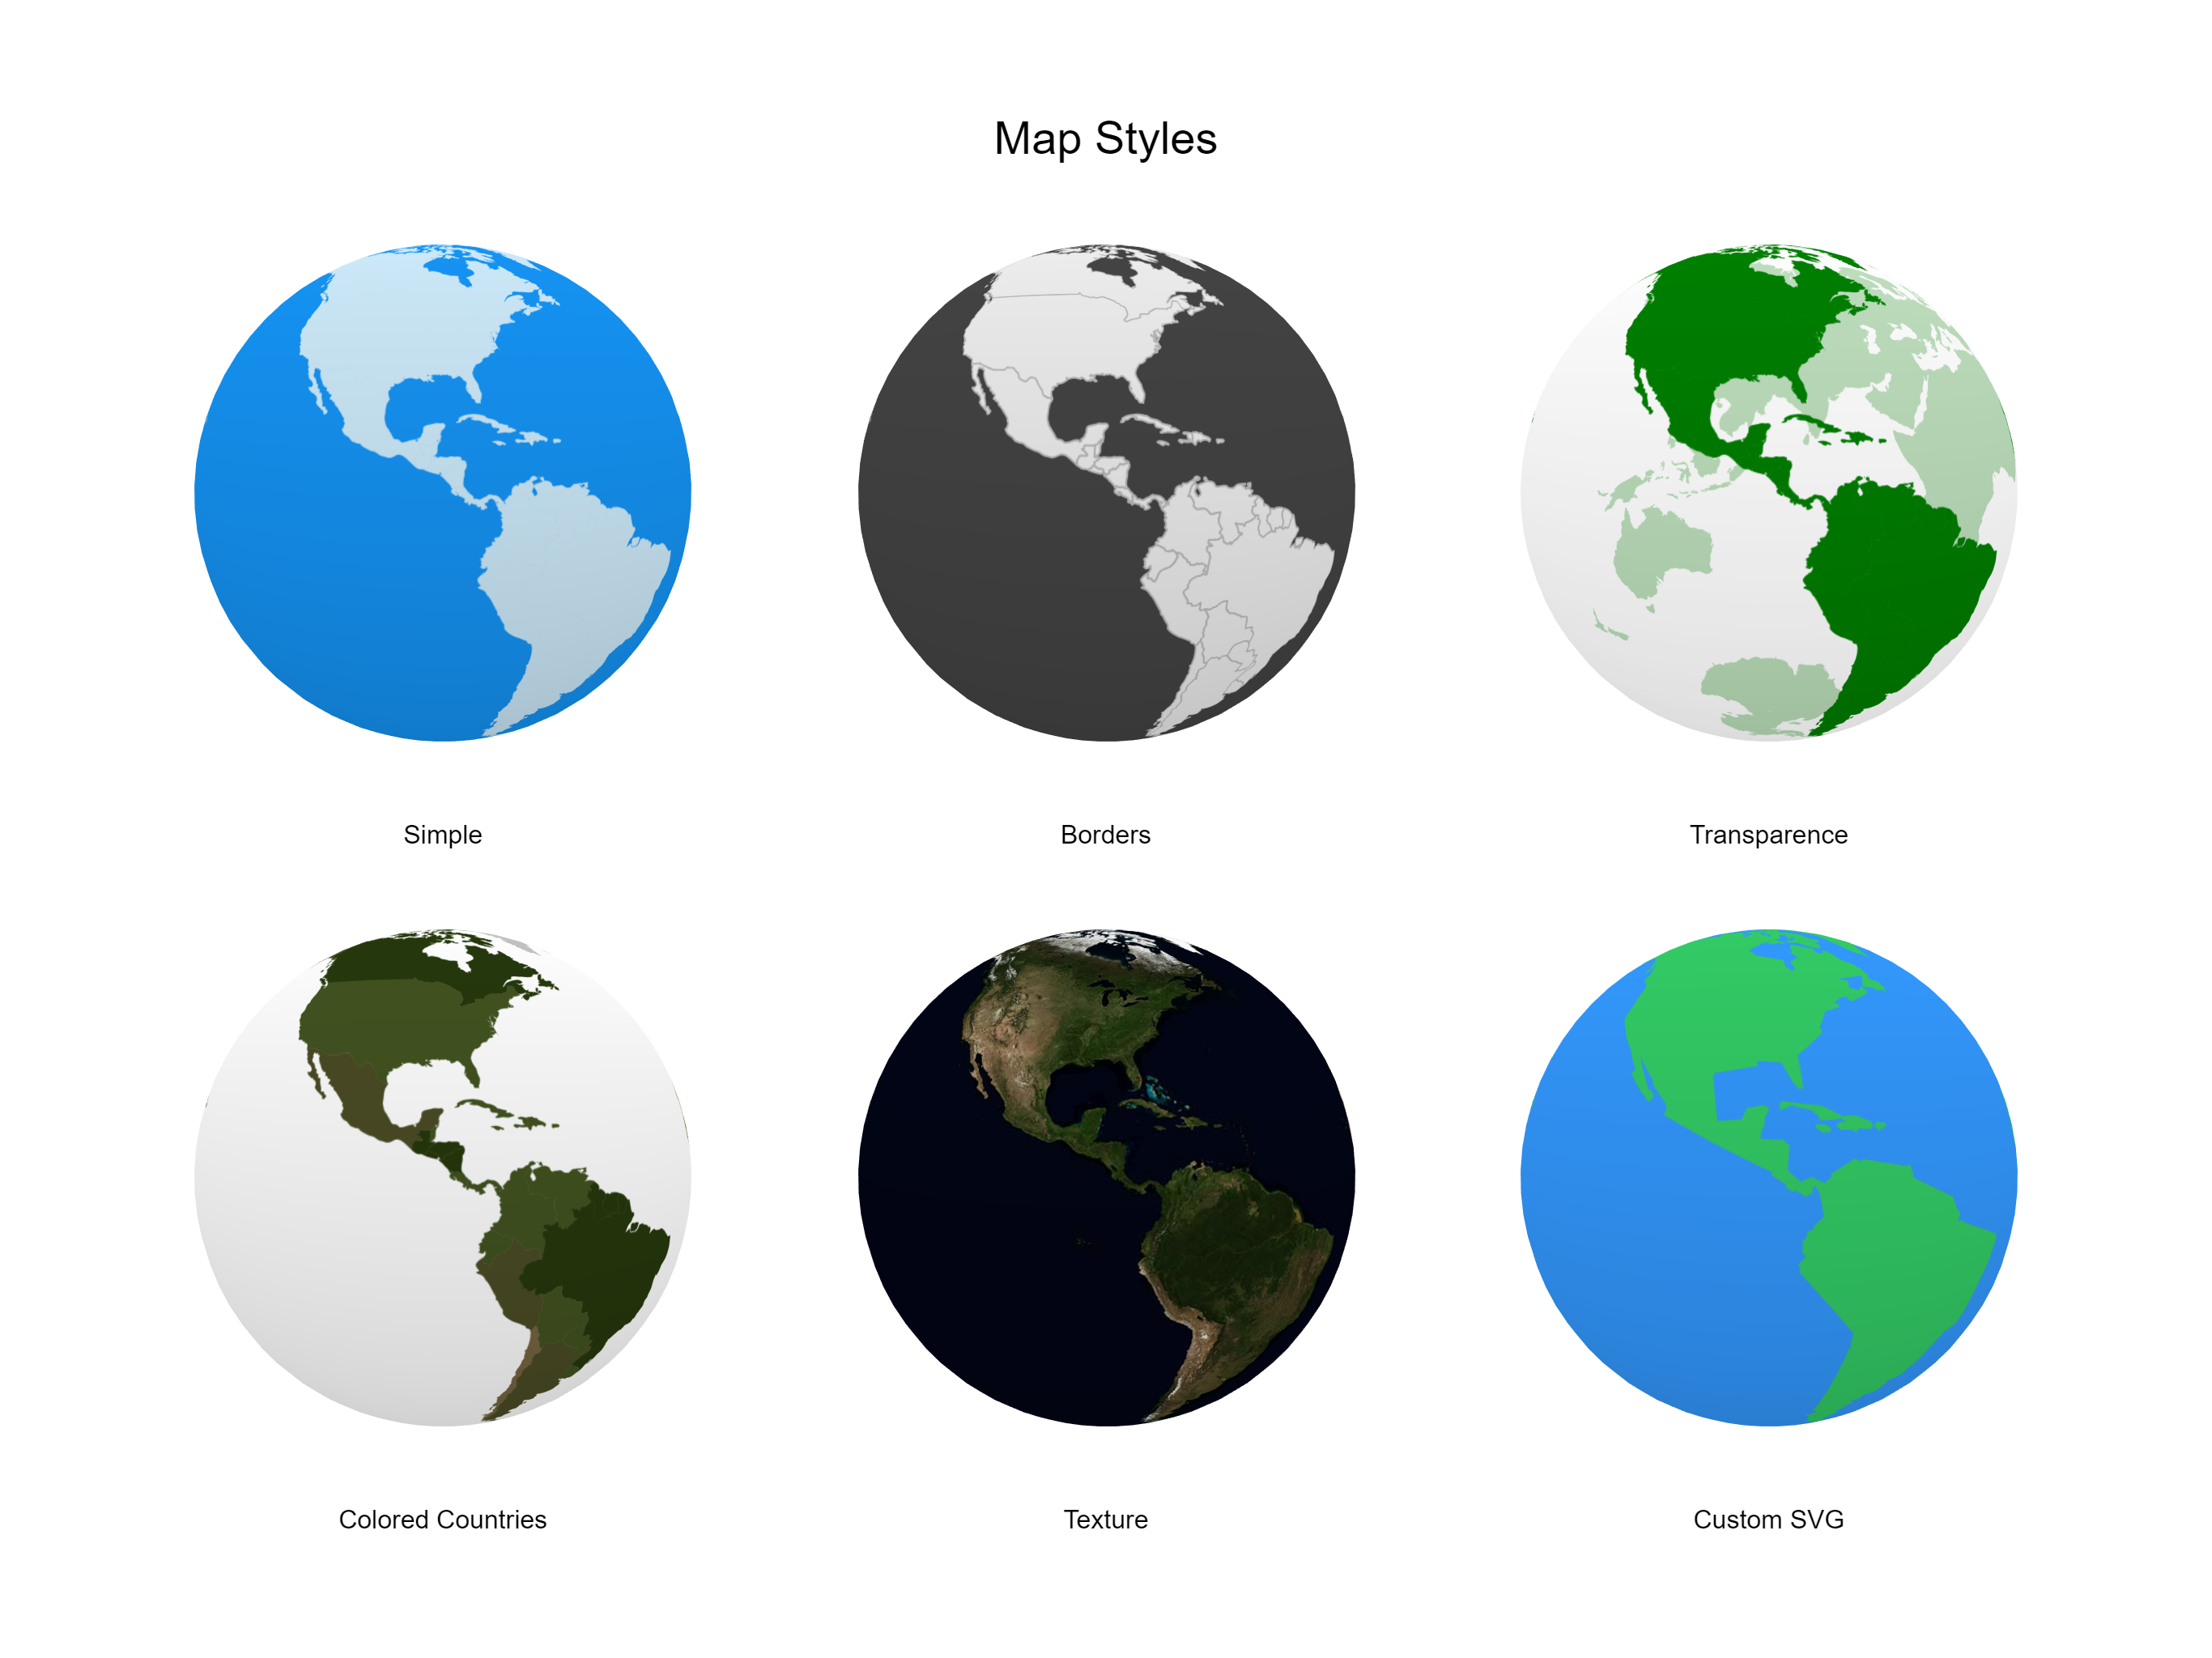 Miniature Earth   3D Globe for JavaScript on globe az map, globe background, globe mac, earth3d, globe map outline, globe map design, bing maps platform, 3d world atlas, globe map office, globe photoshop, globe map art, globe view, globe with grid lines, life with playstation, globe and health, globe map black and white, globe map cartoon, globe clip art, globe map projection, globe map print, globe map vector, globe map drawing, globe map illustration, globe map with oceans, bing maps,